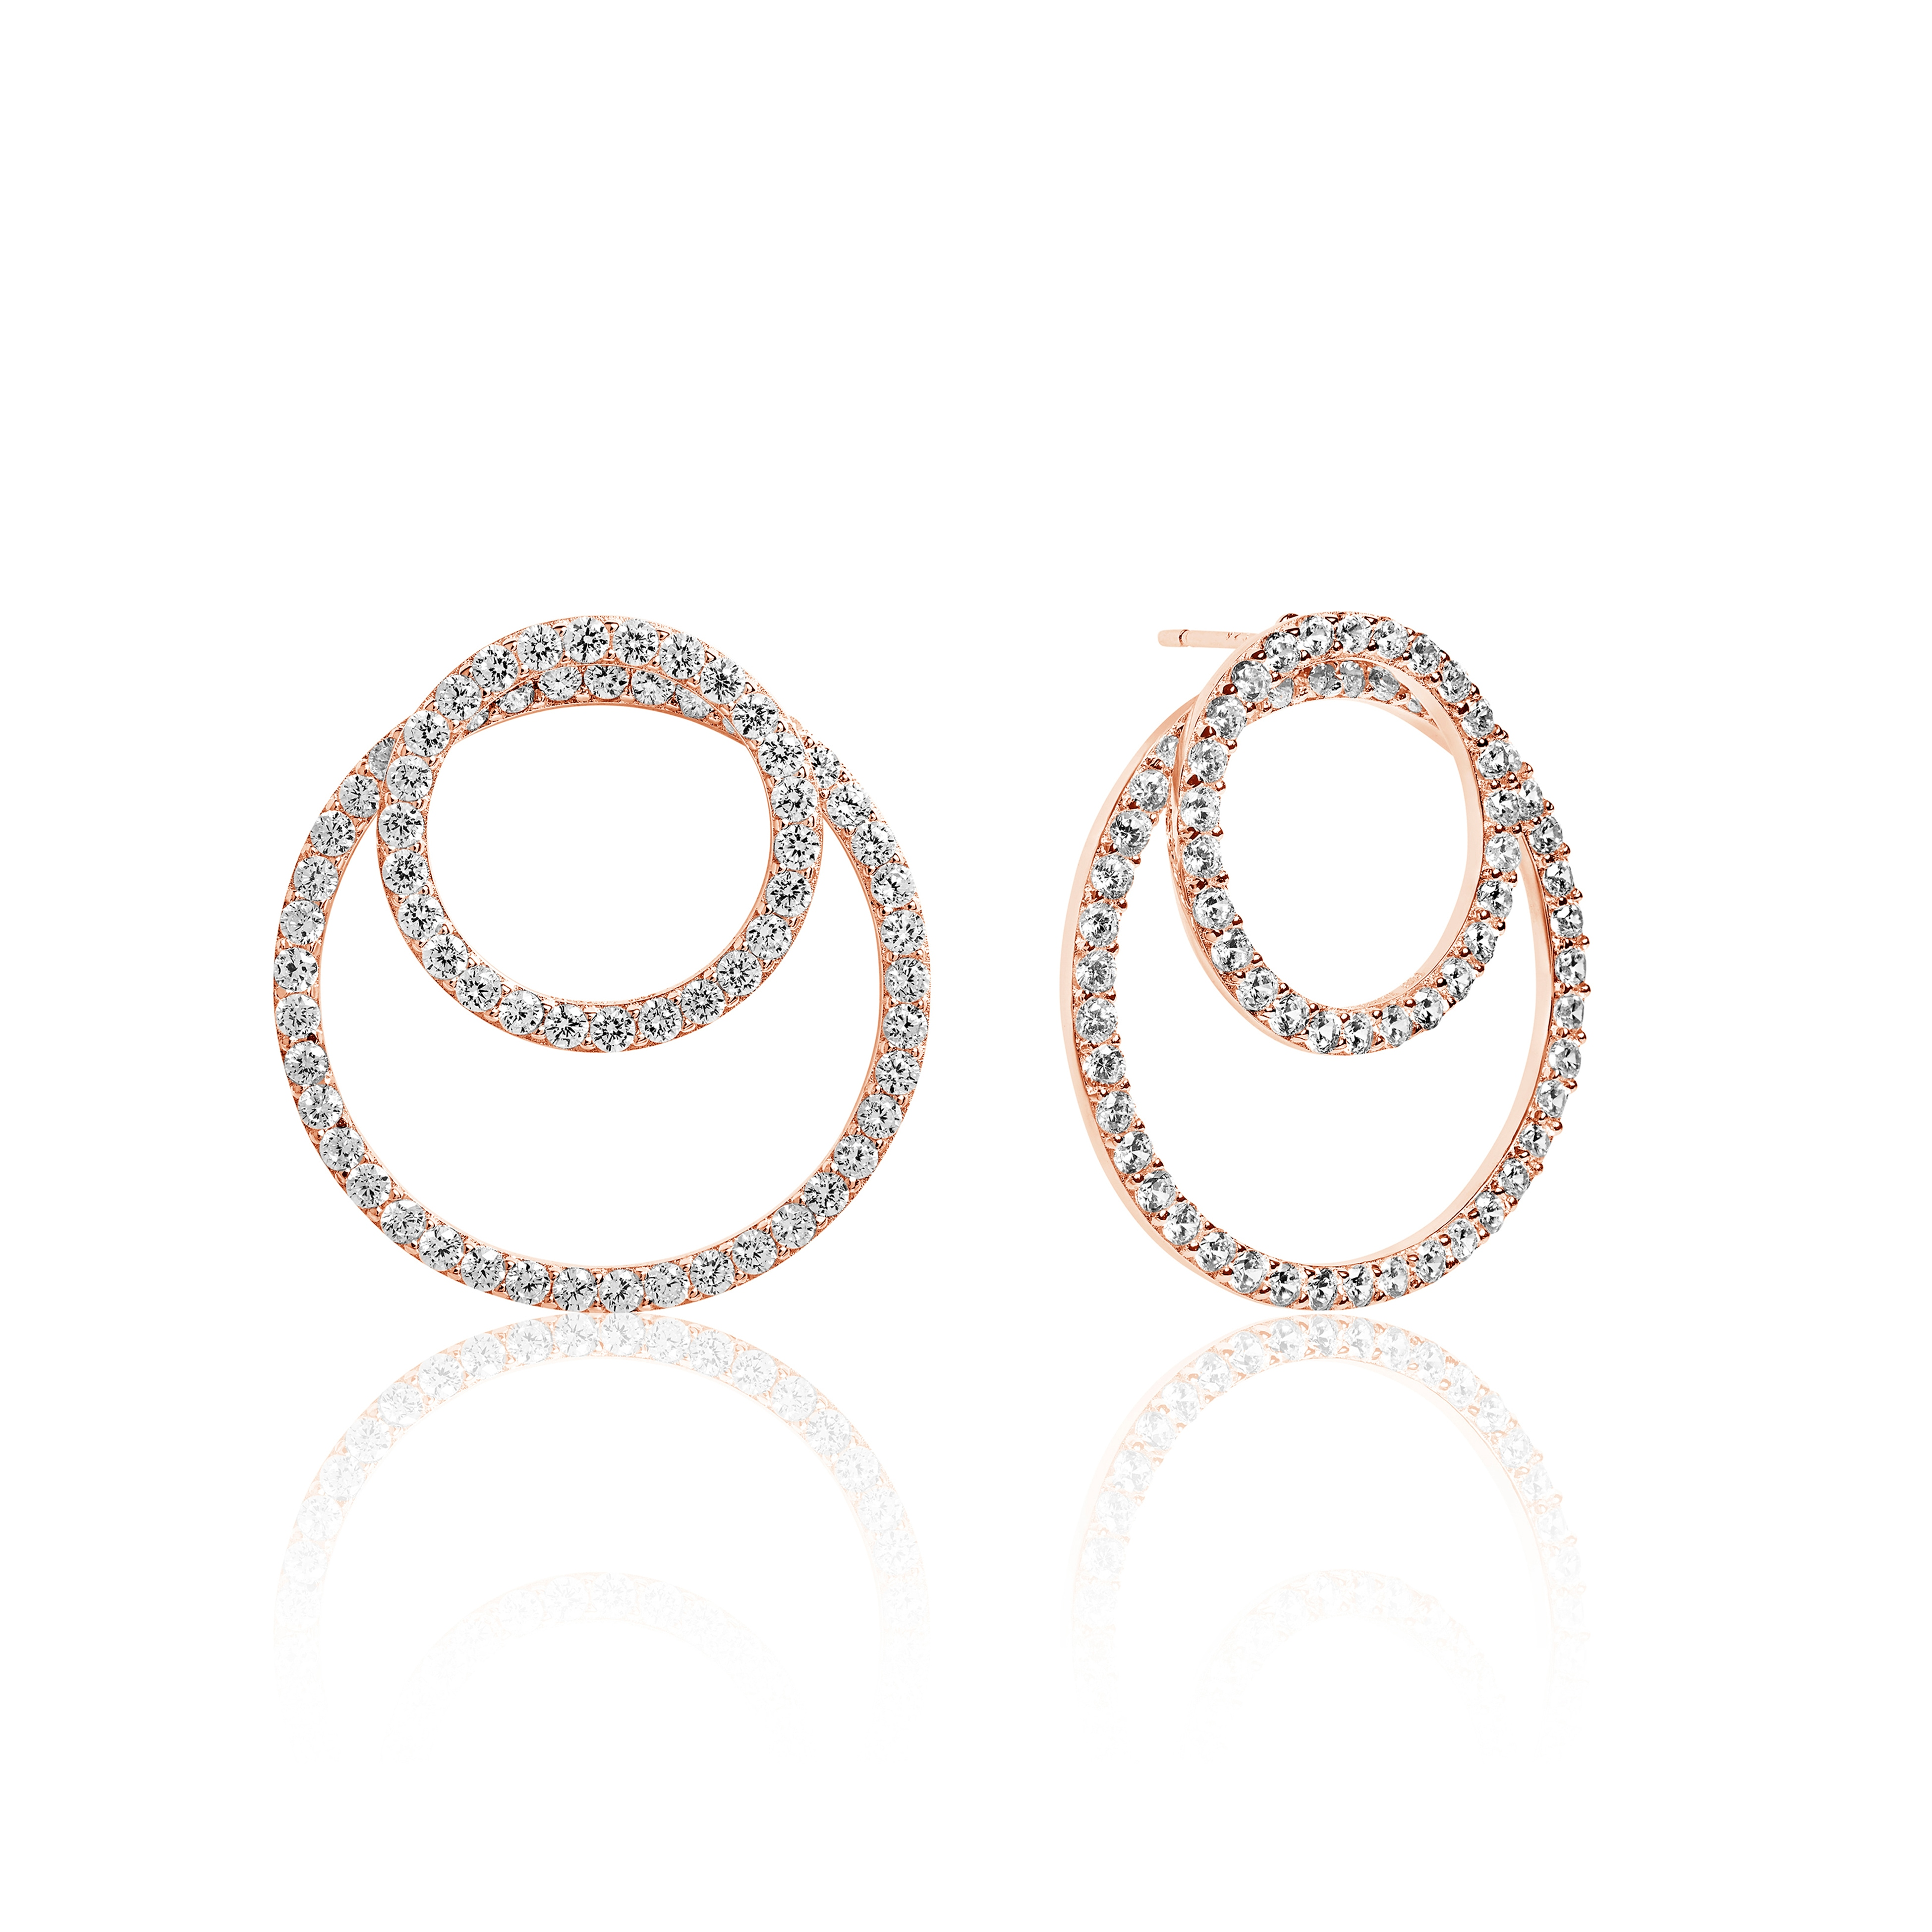 Sif Jakobs Jewellery Ohrstecker VALENZA DUE | Schmuck > Ohrschmuck & Ohrringe > Ohrstecker | Sif Jakobs Jewellery